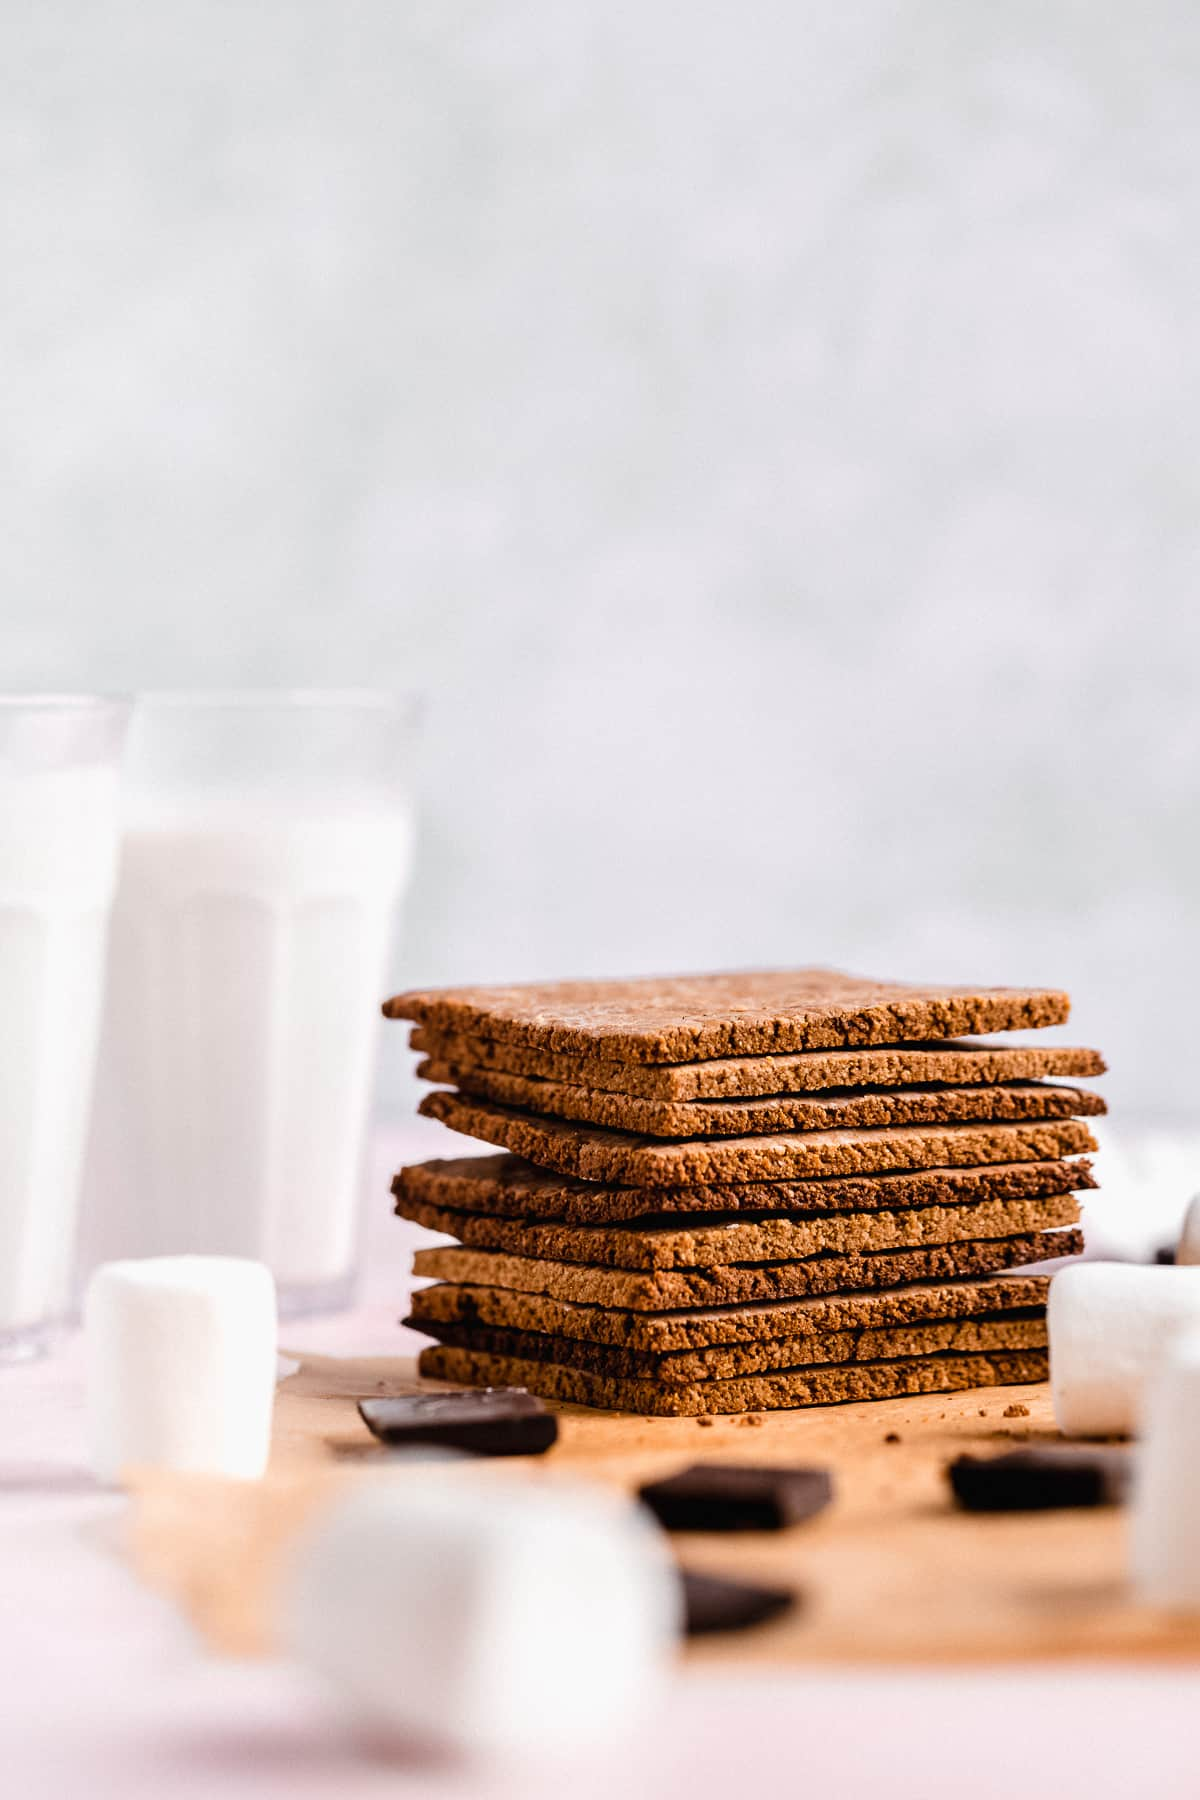 Side view of a stack of ten Homemade Graham Crackers on parchment paper.  Two glasses of milk are in the background.  Chocolate pieces and marshmallows are scattered around.